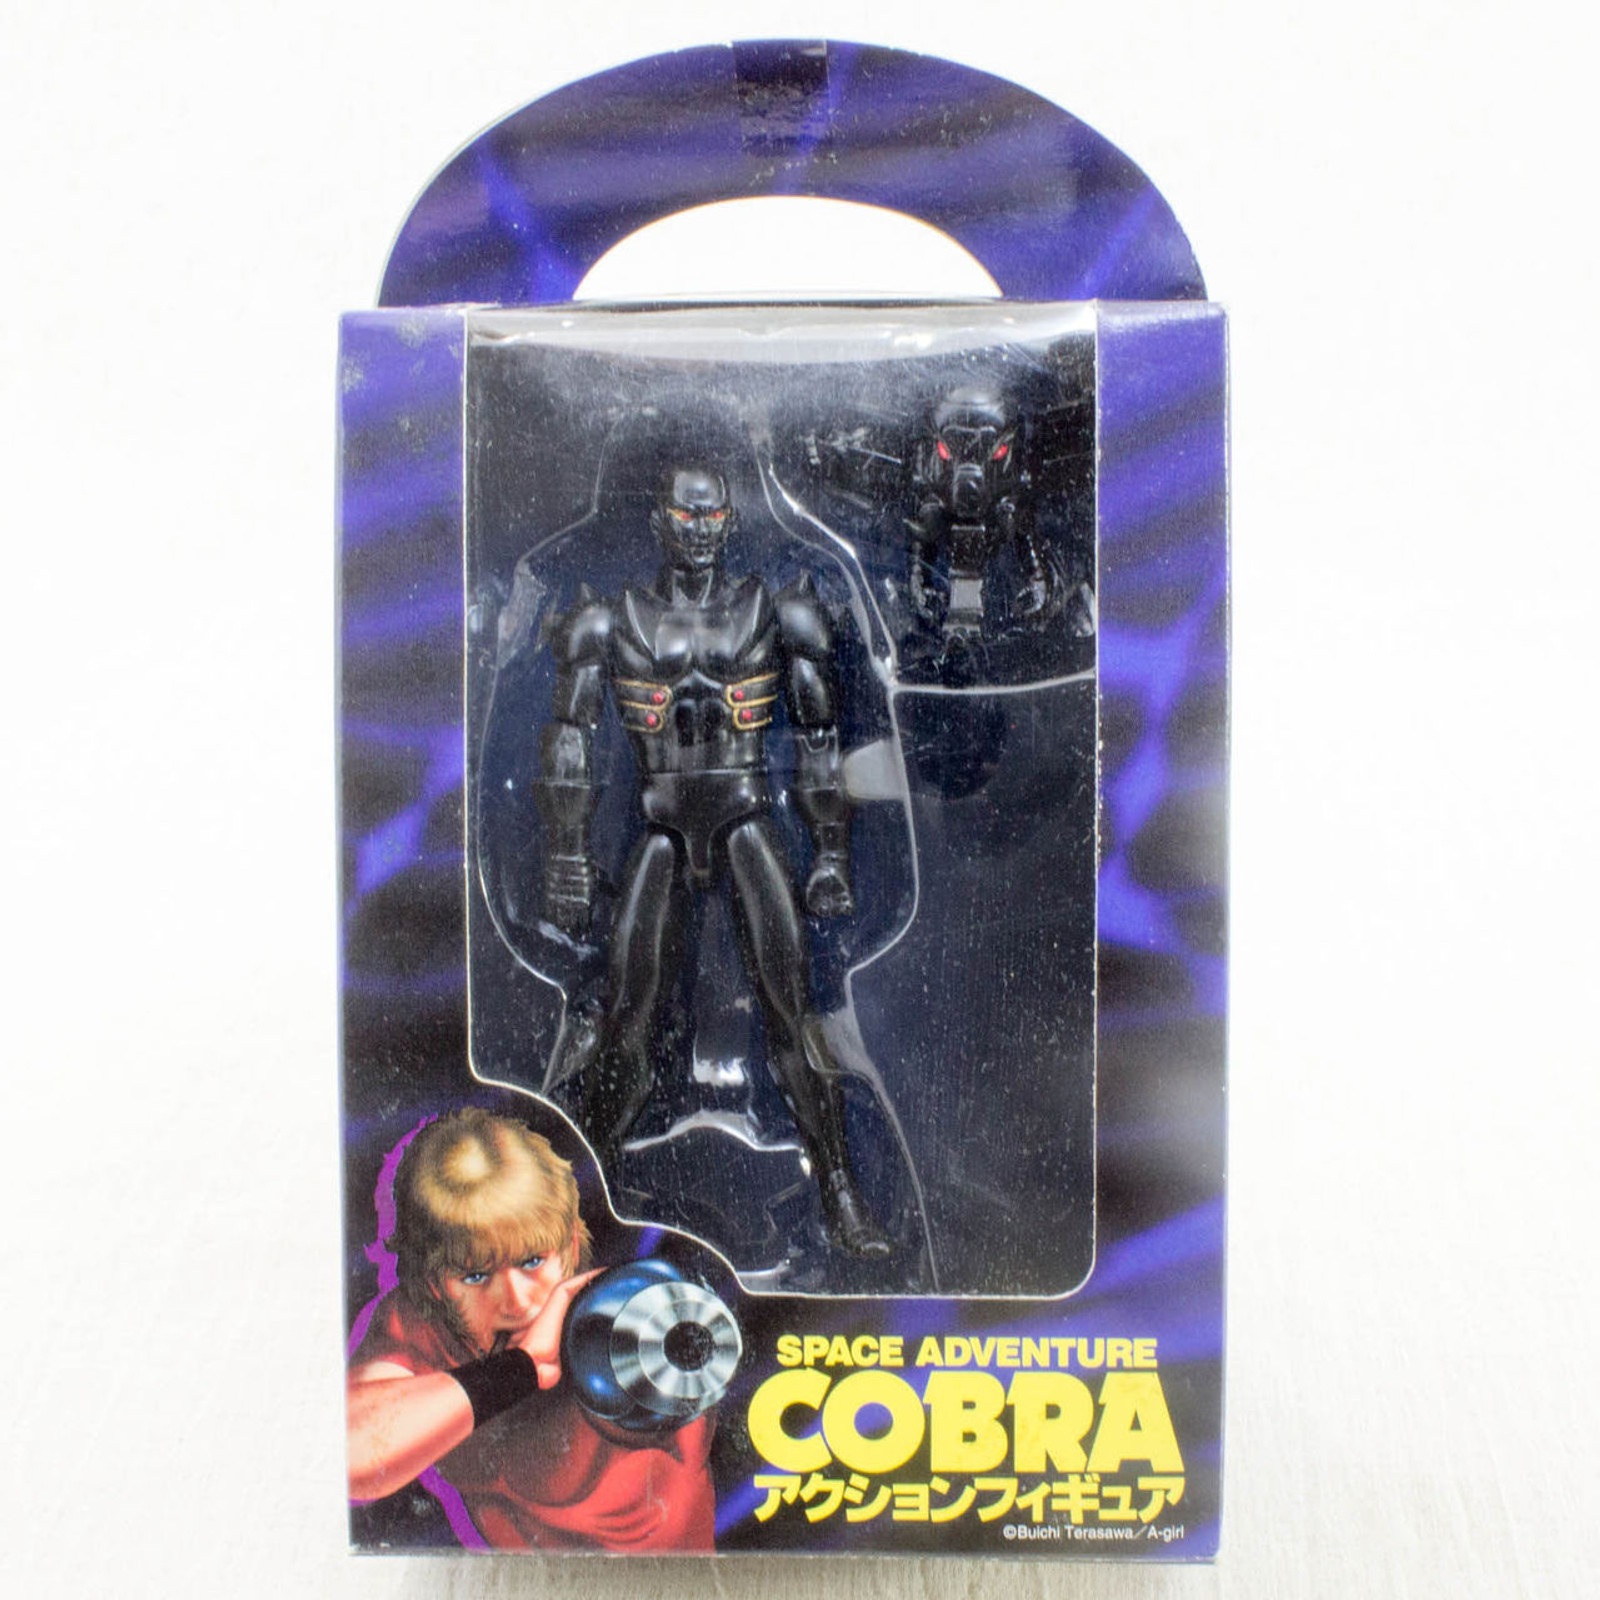 Space Adventure Cobra Backsword Zero Action Figure Banpresto JAPAN ANIME MANGA